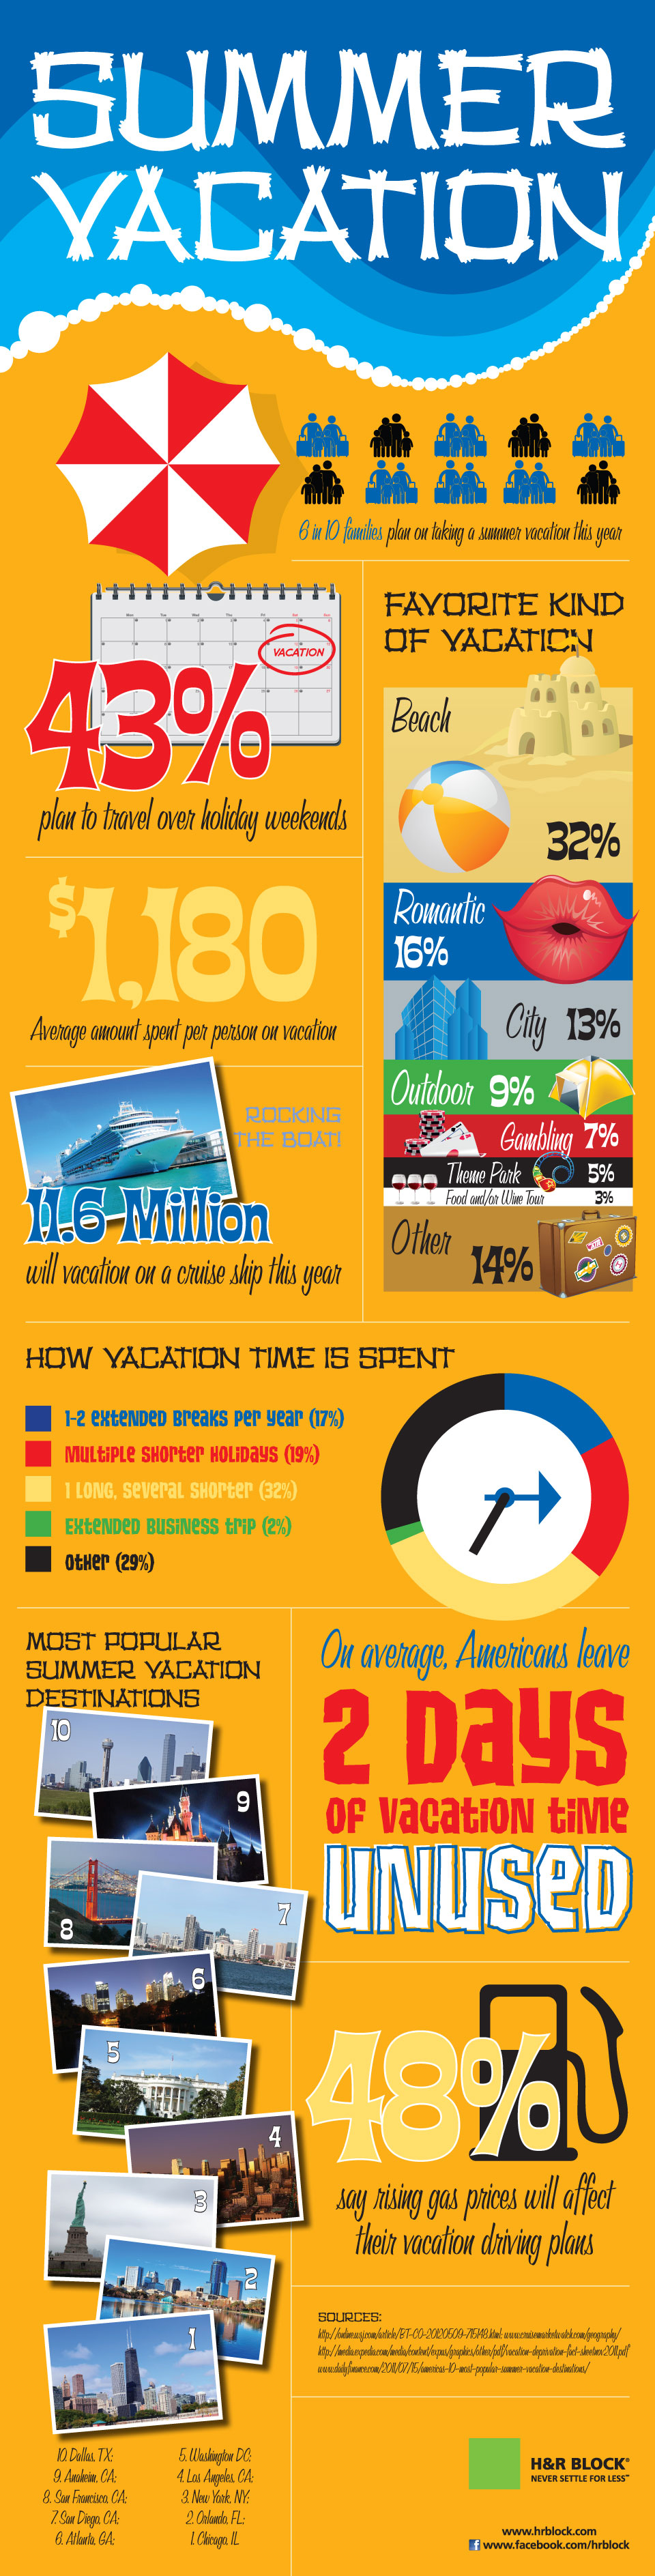 Summer-Vacation-infographic